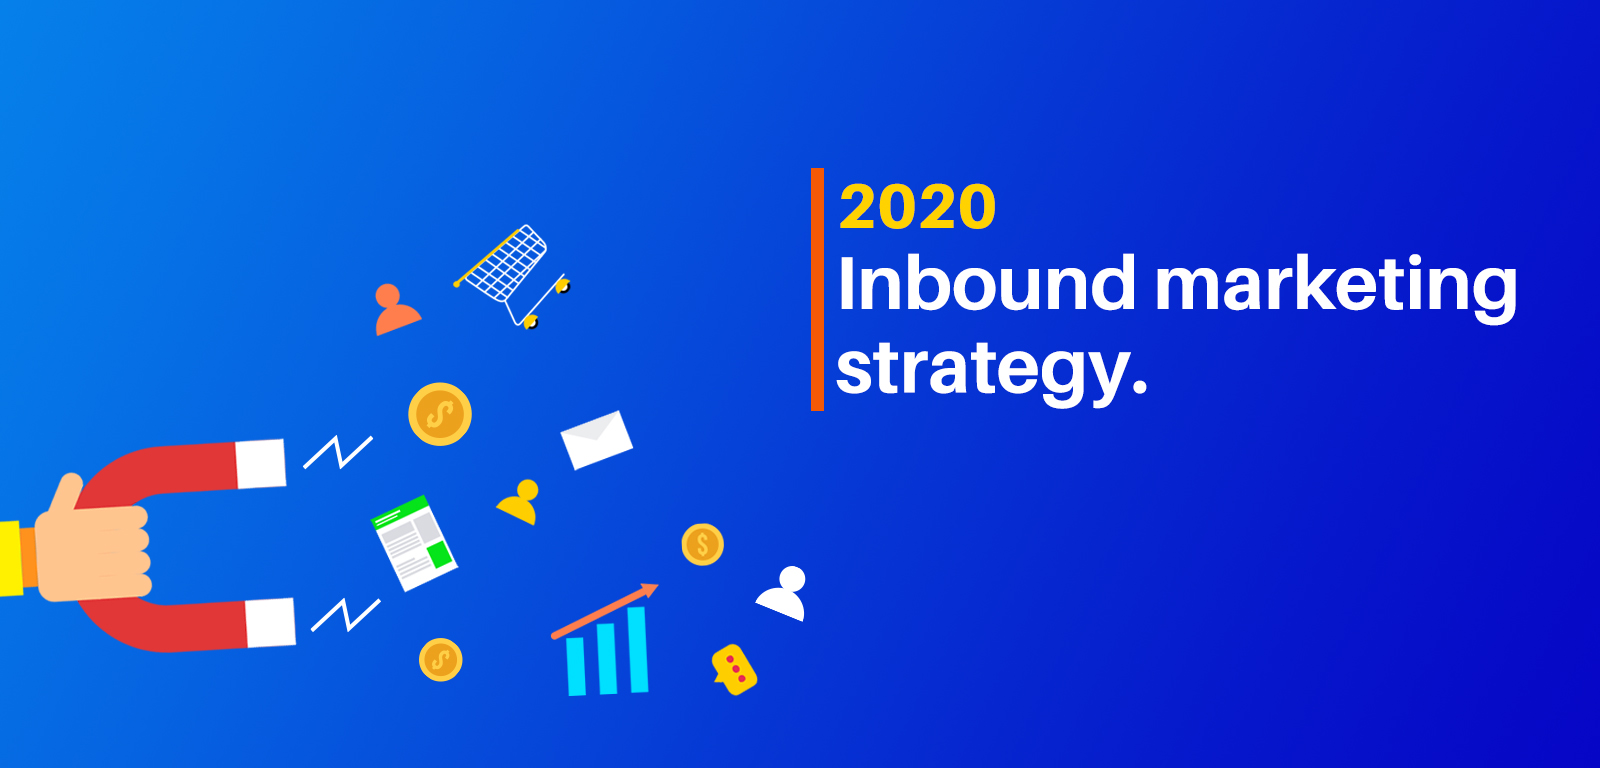 2020 INBOUND MARKETING STRATEGY